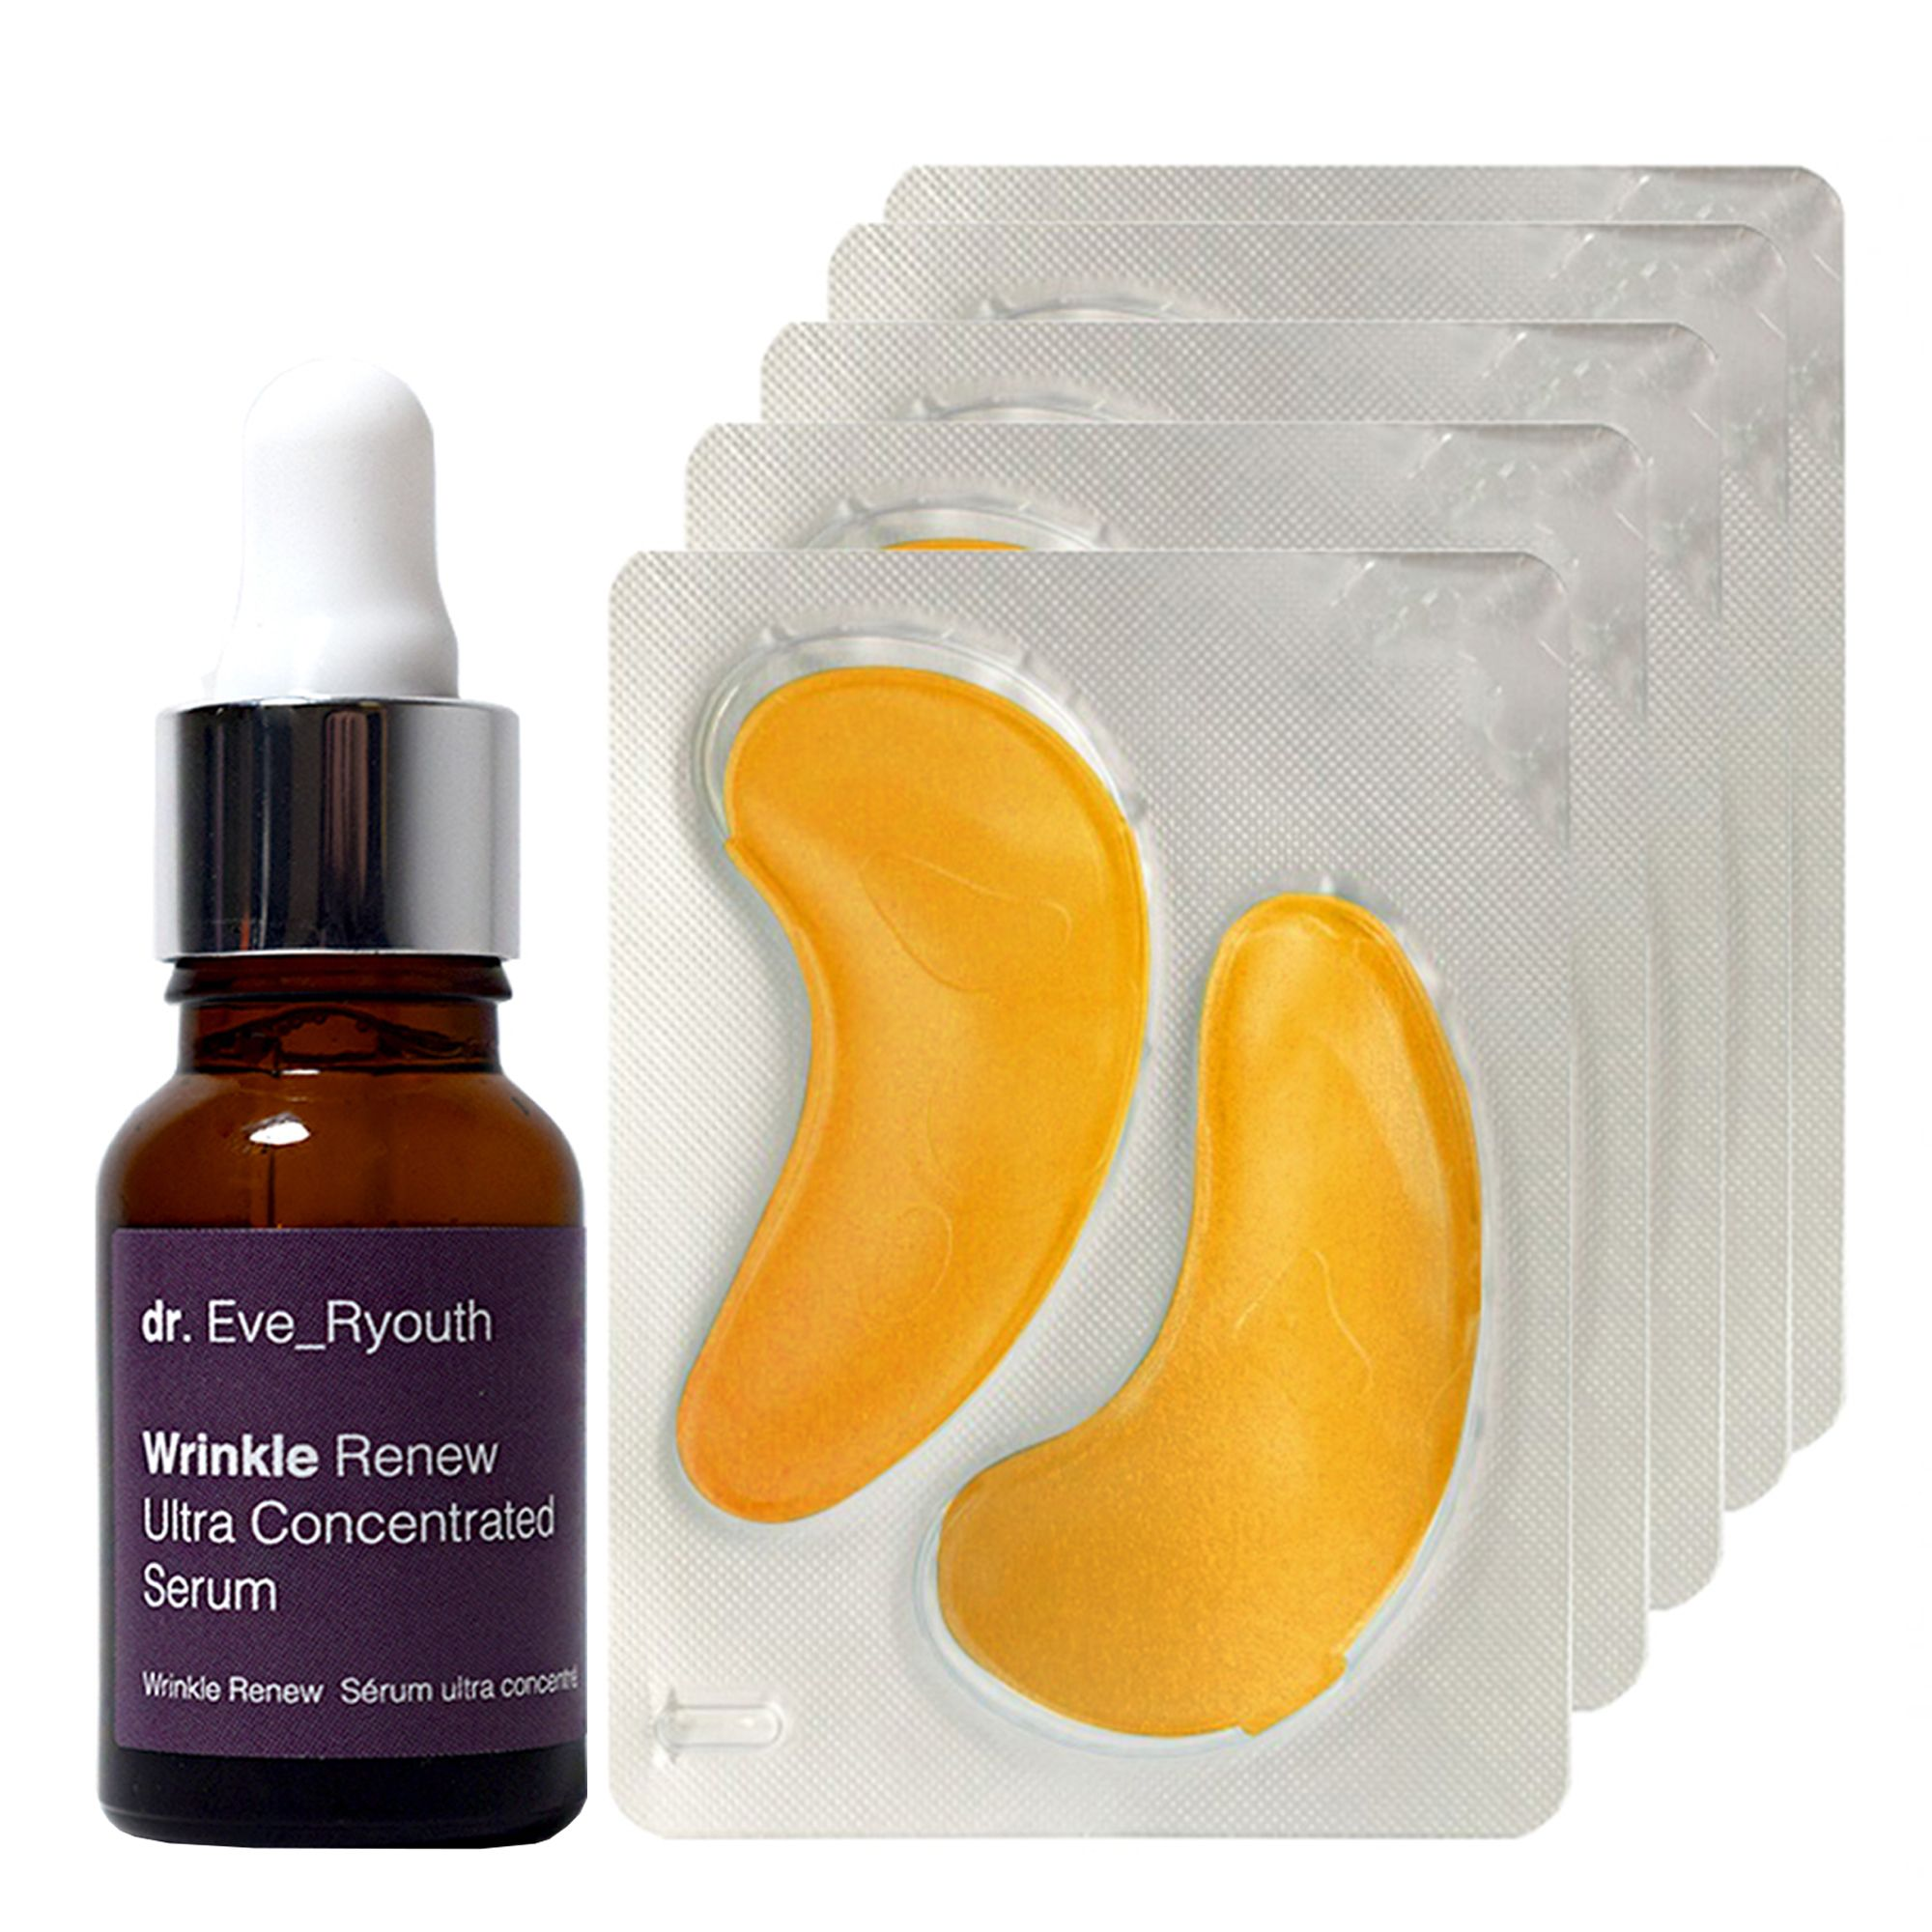 Wrinkle Renew Ultra Concentrated Serum 15ml + 24K Gold + Antioxidant Hydrating Eye Treatments Pads